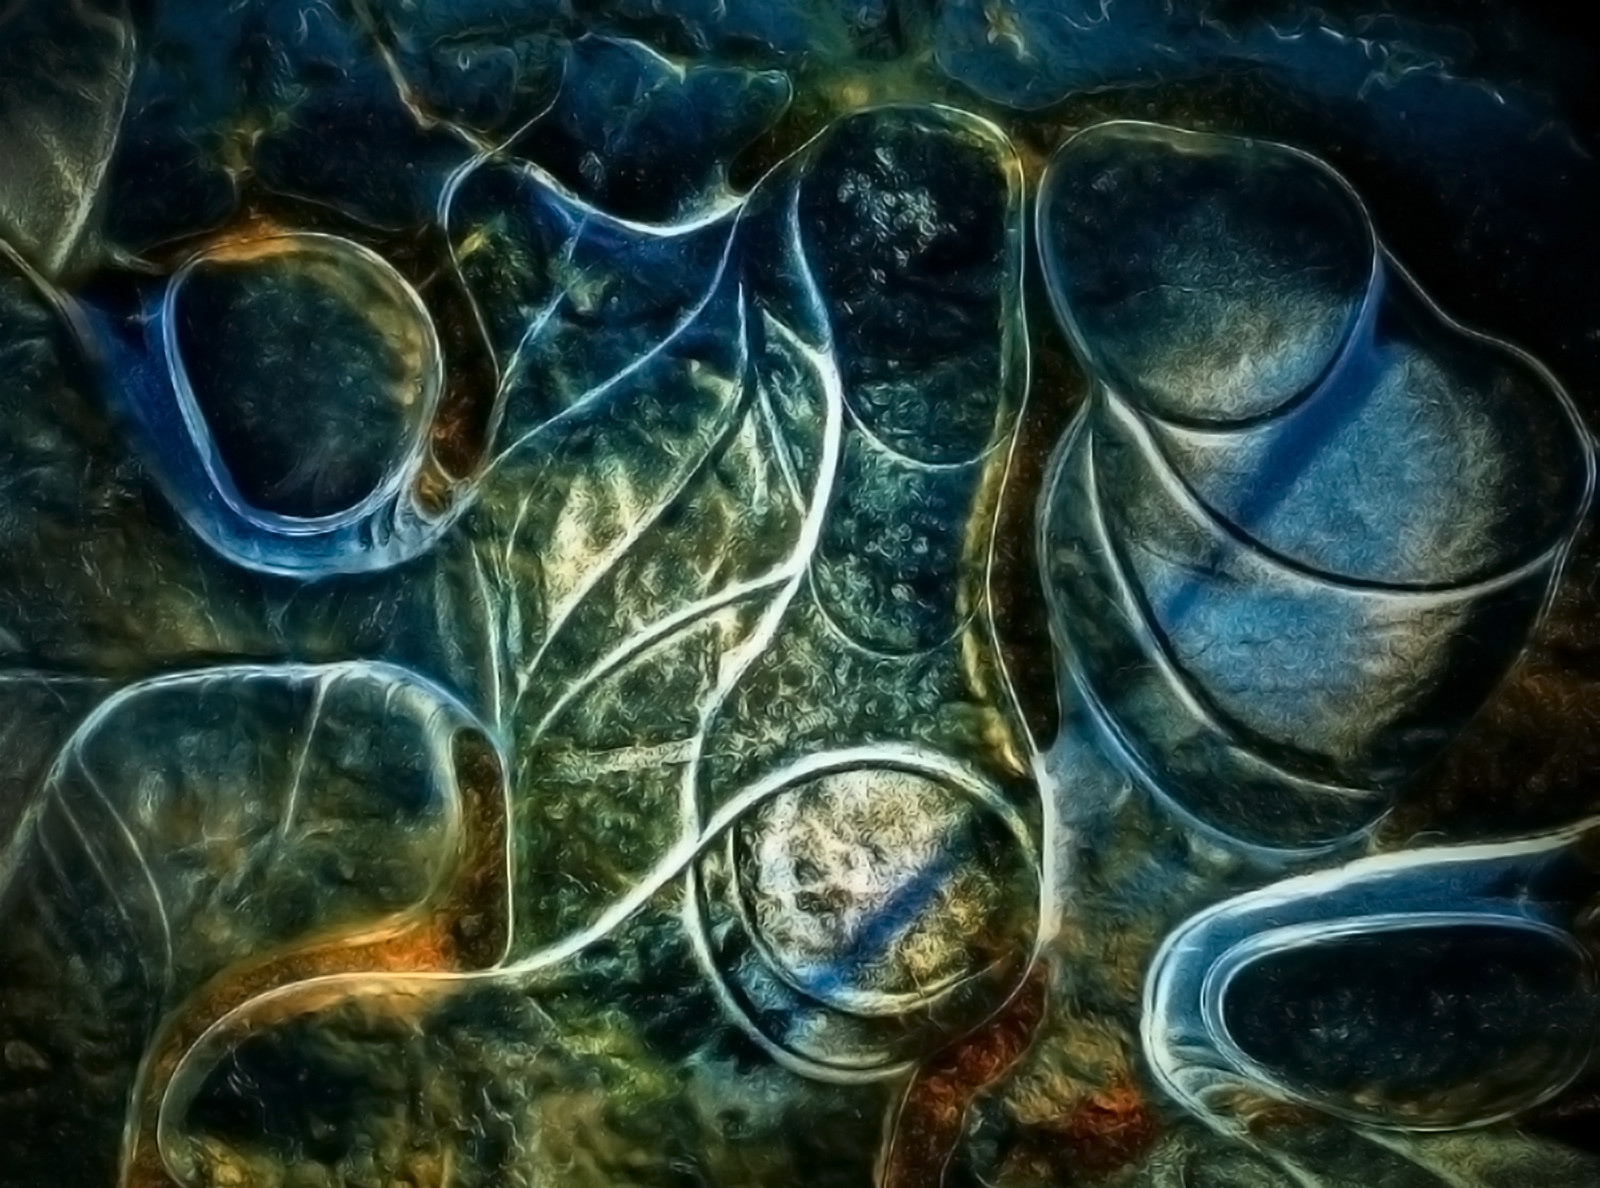 'Icy Puddle' by Helen Honeyman (13 marks)